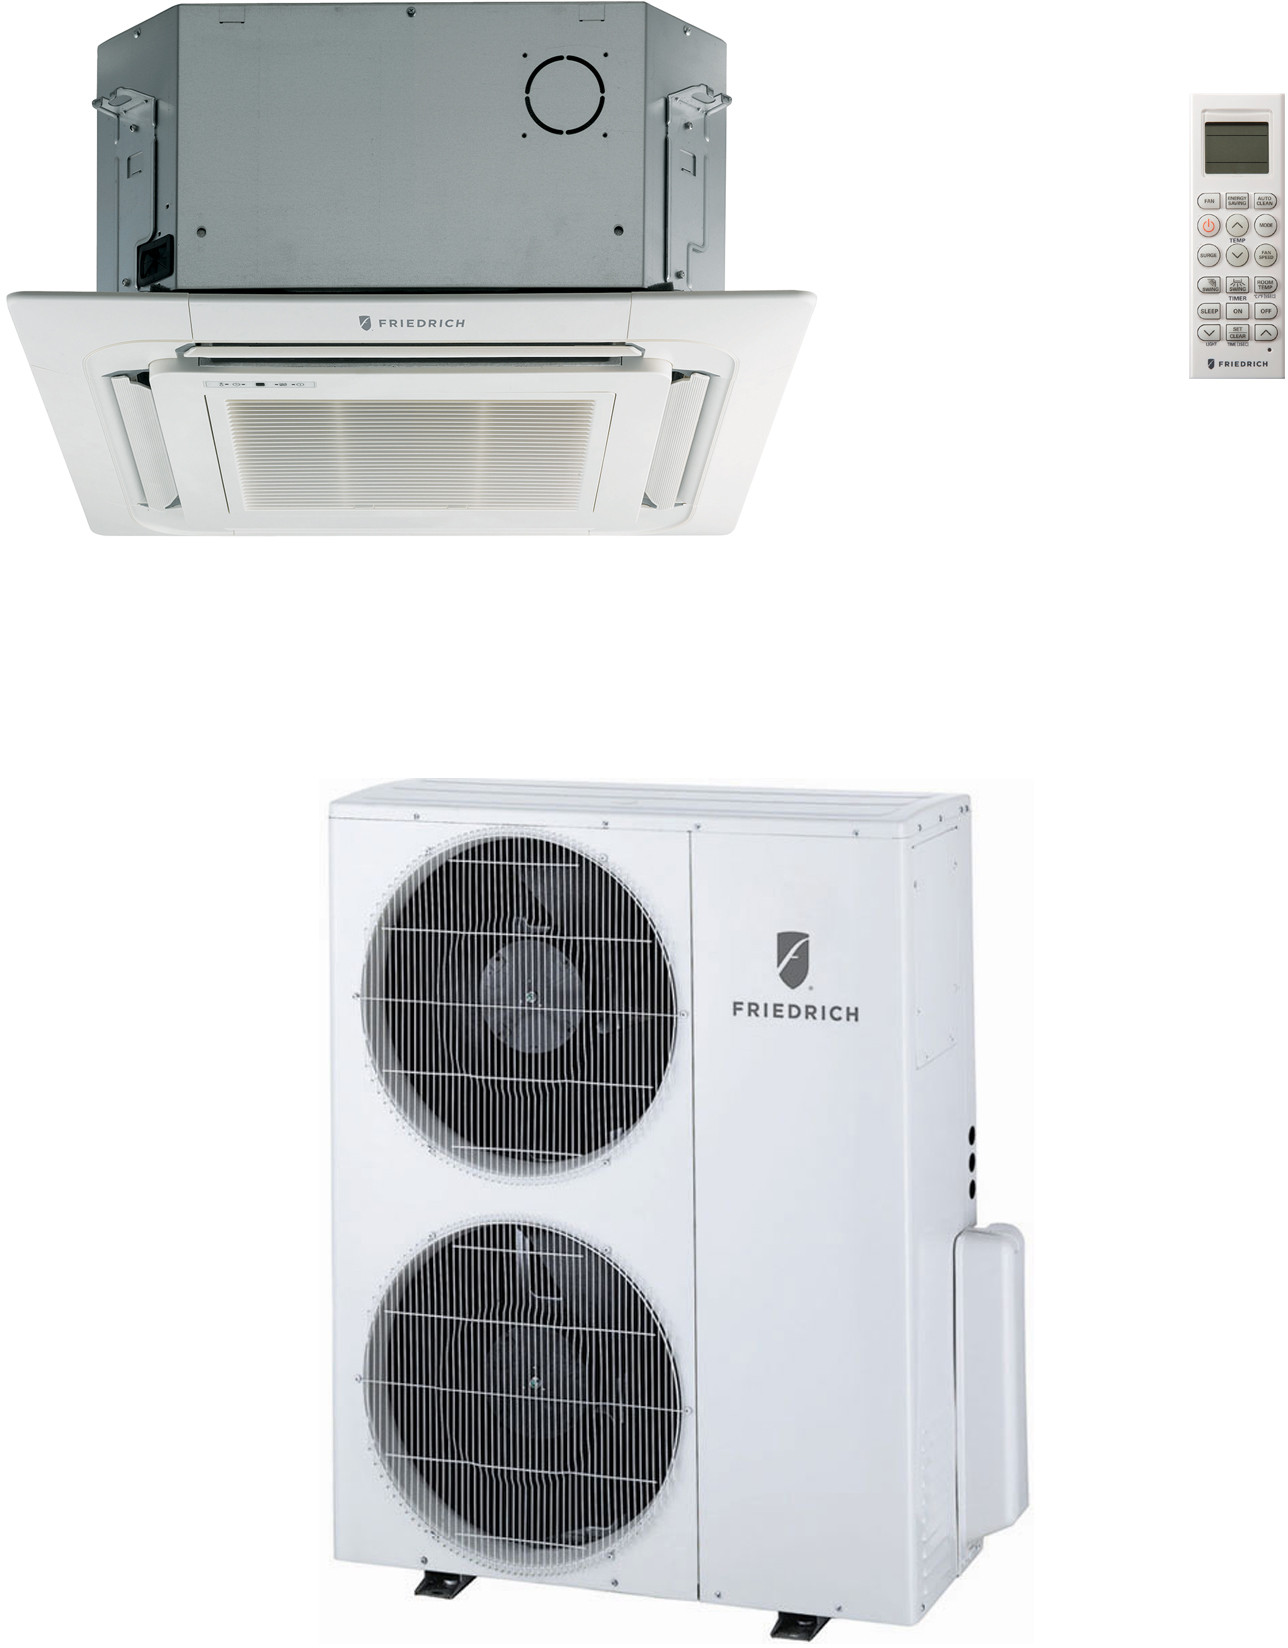 Friedrich 36,000 BTU Single Zone Ductless Split System C36YJ